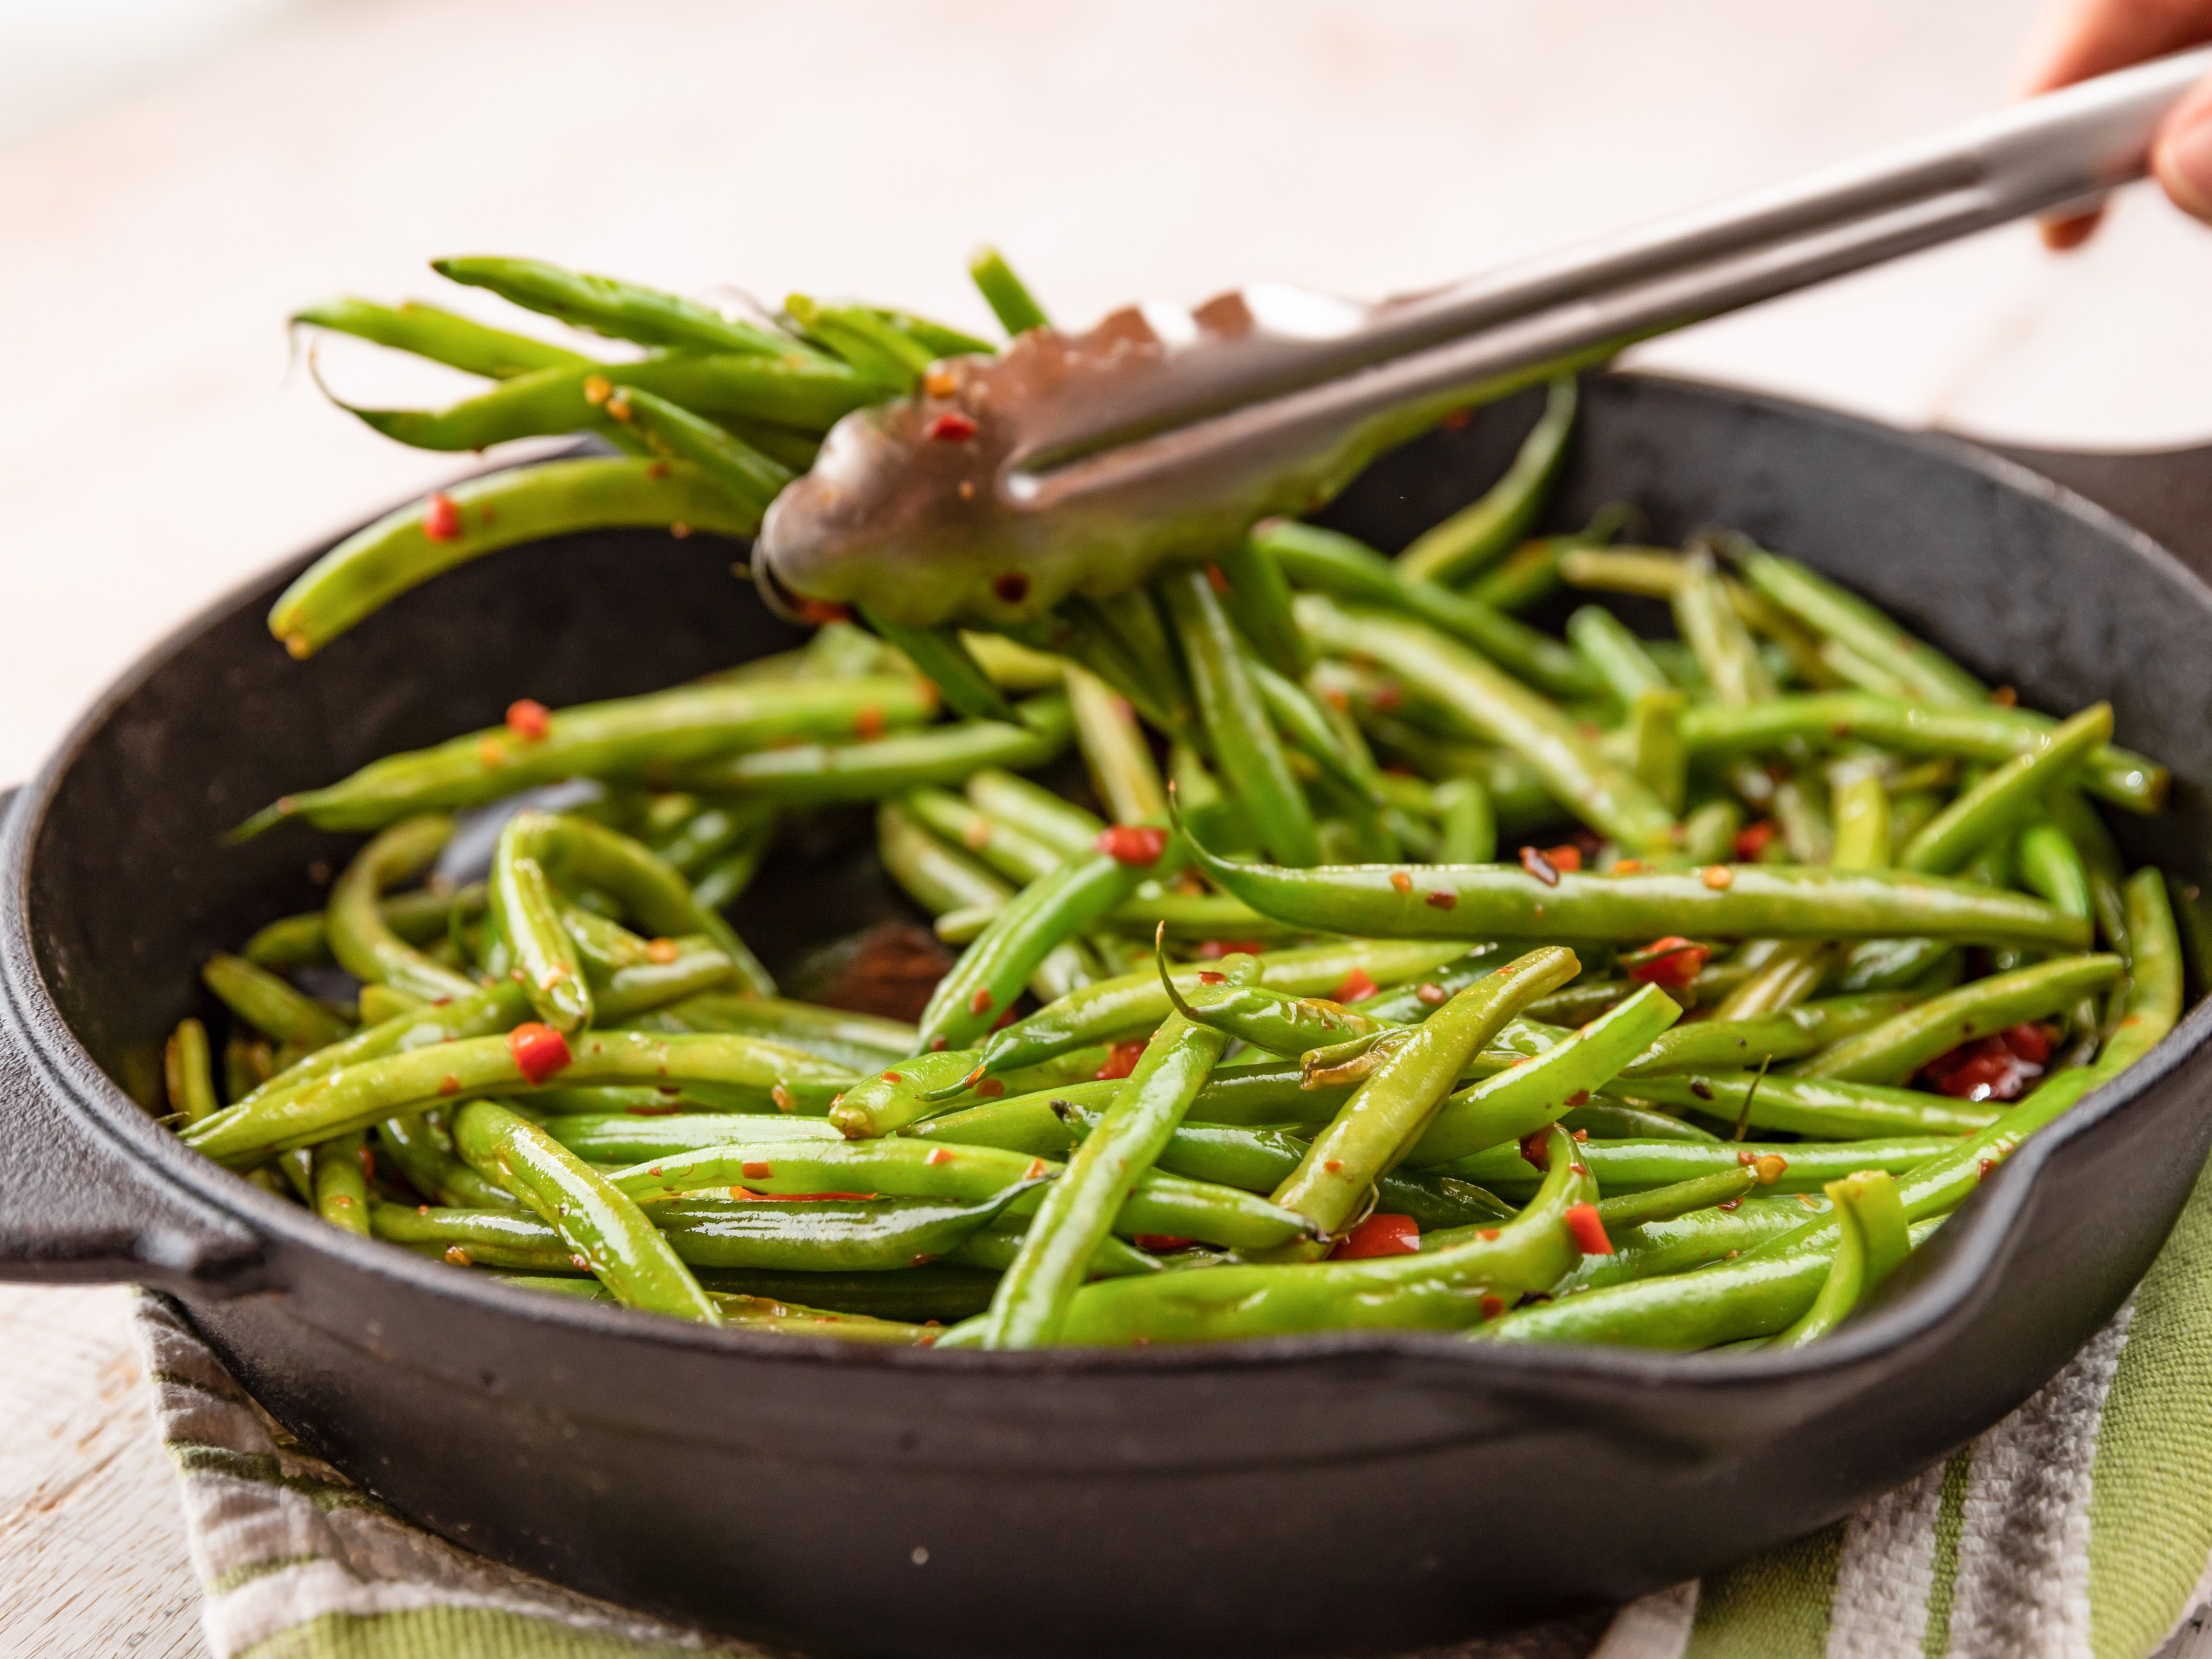 Spicy Green Beans Recipe Spicy Green Bean Recipes Green Bean Recipes Food Network Recipes